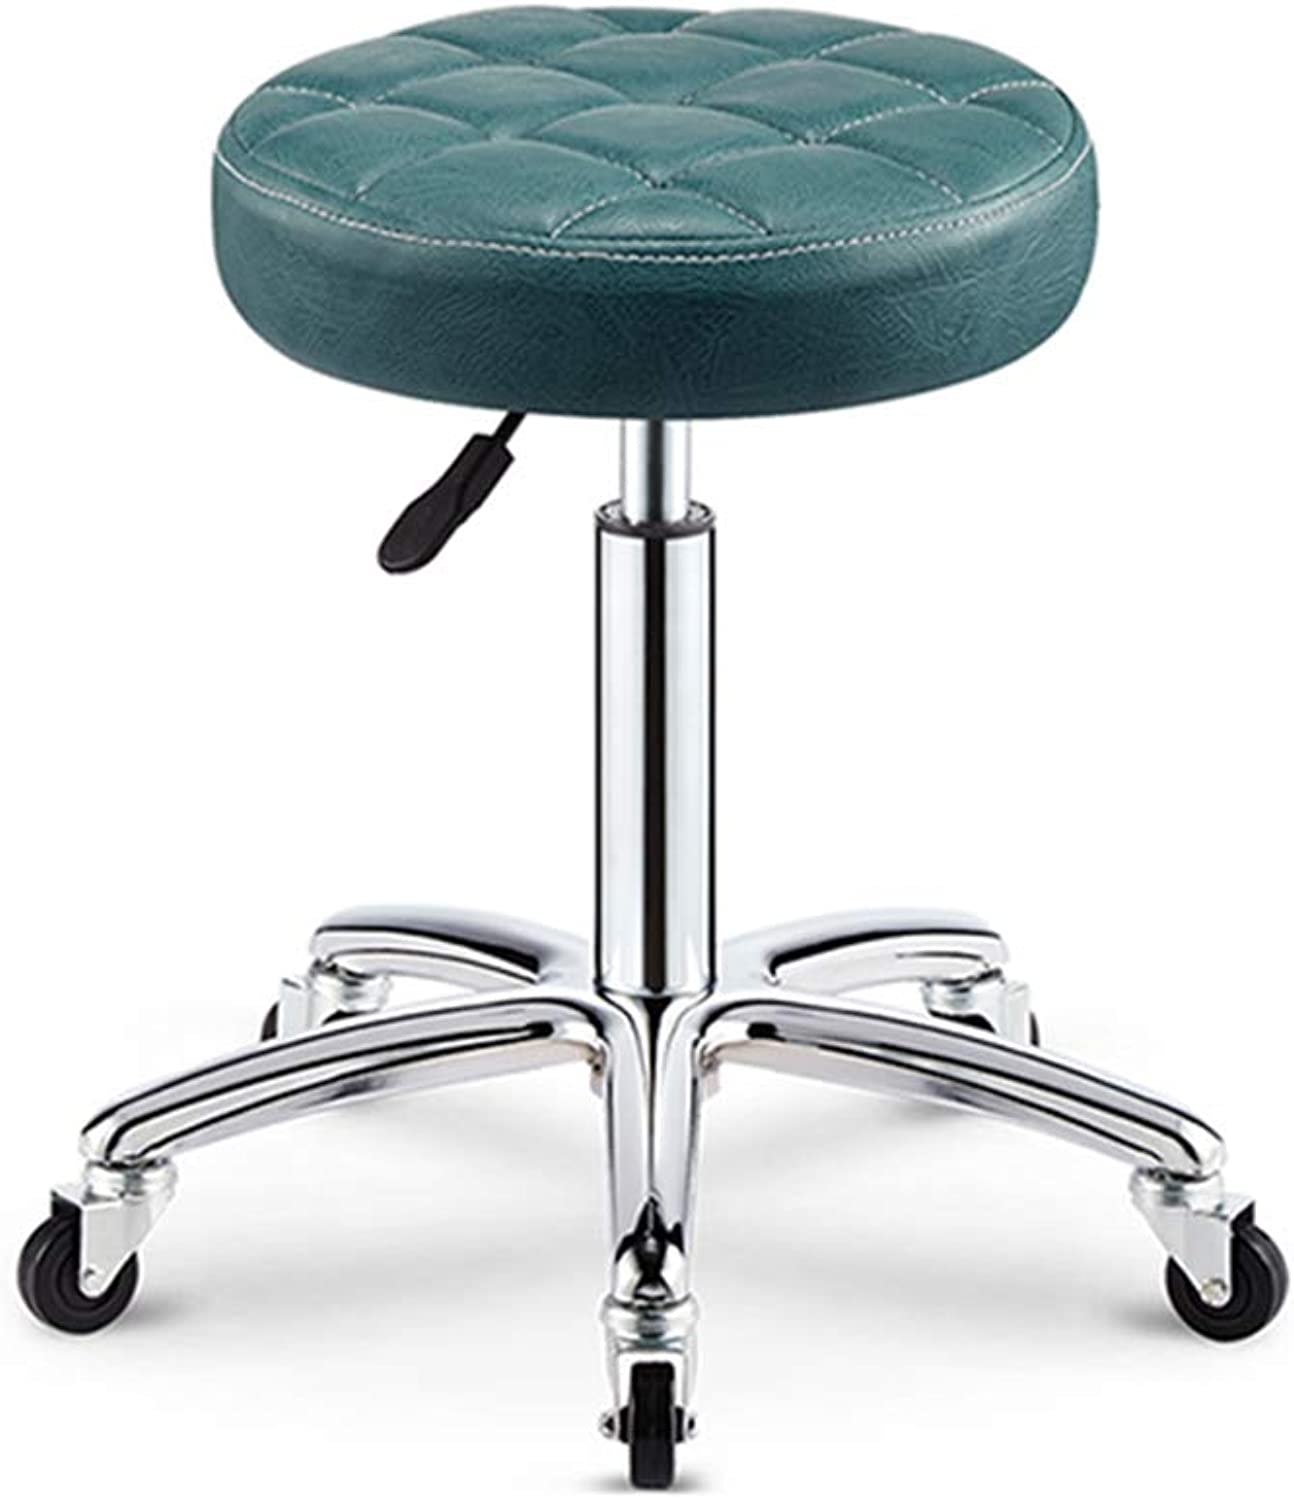 ZUOANCHEN Bar Stools PU Leather Rolling Low Swivel Stool Height Adjustable from 44-59 cm for Kitchen Bar Salon Spa Clinic with Casters (color   bluee, Size   One)